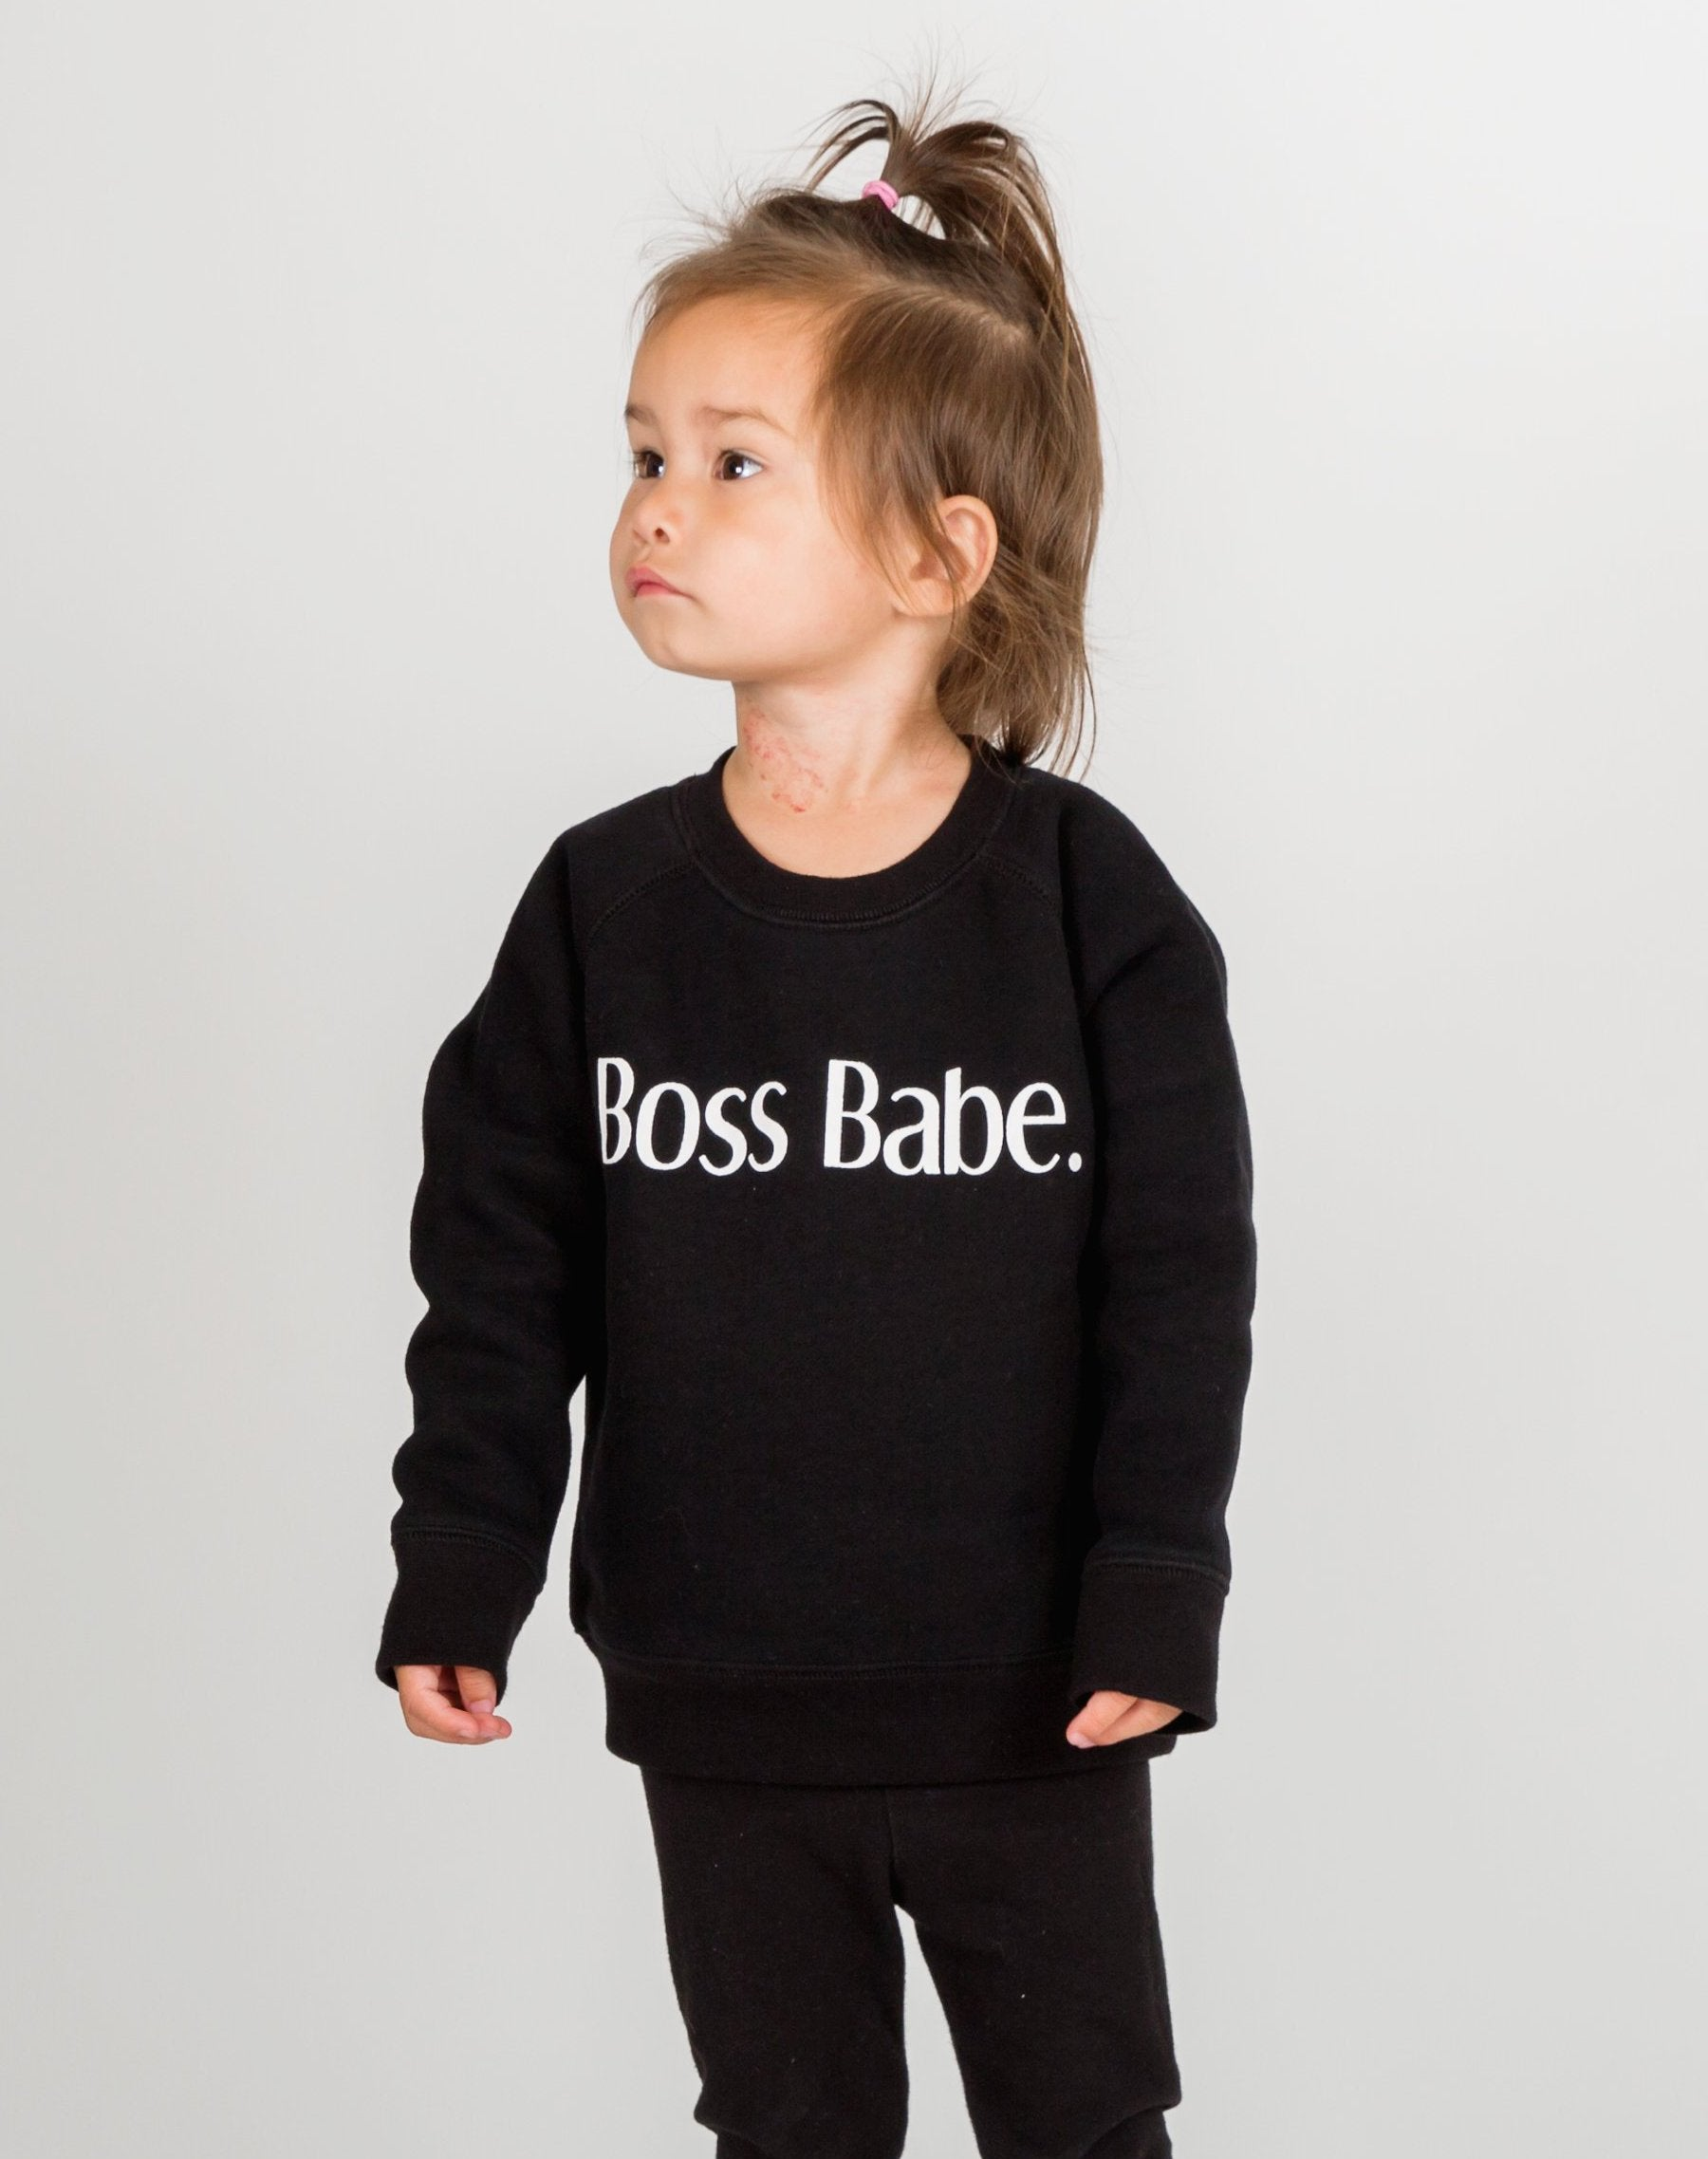 Photo of child wearing Boss Babe classic crew neck sweatshirt in black by Brunette the Label.